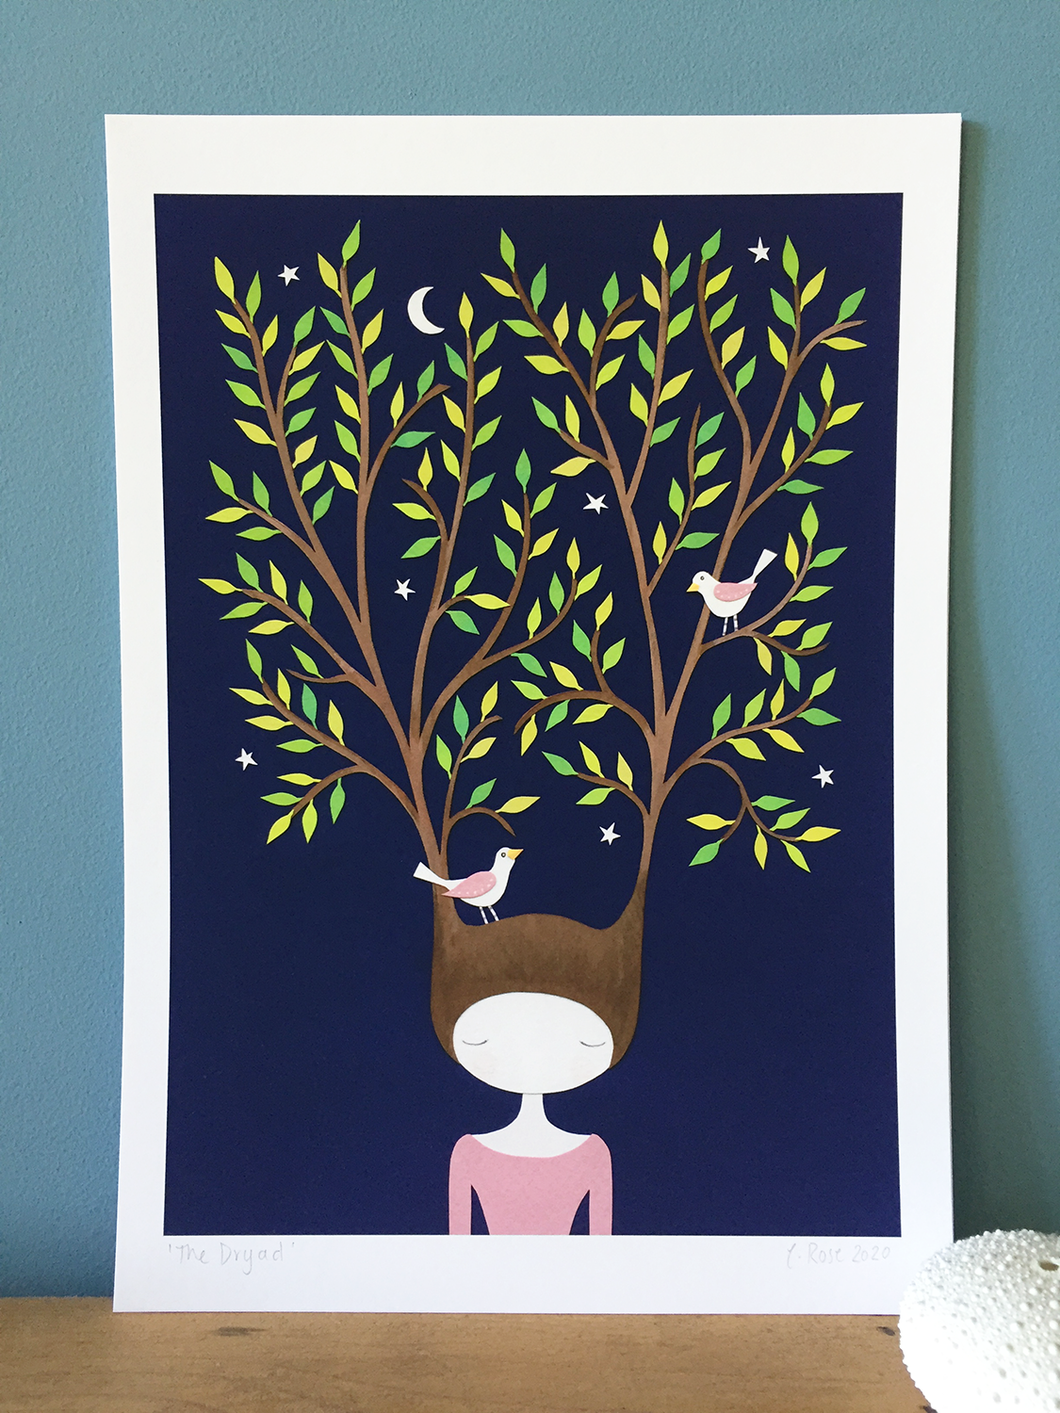 The Dryad - Art Print